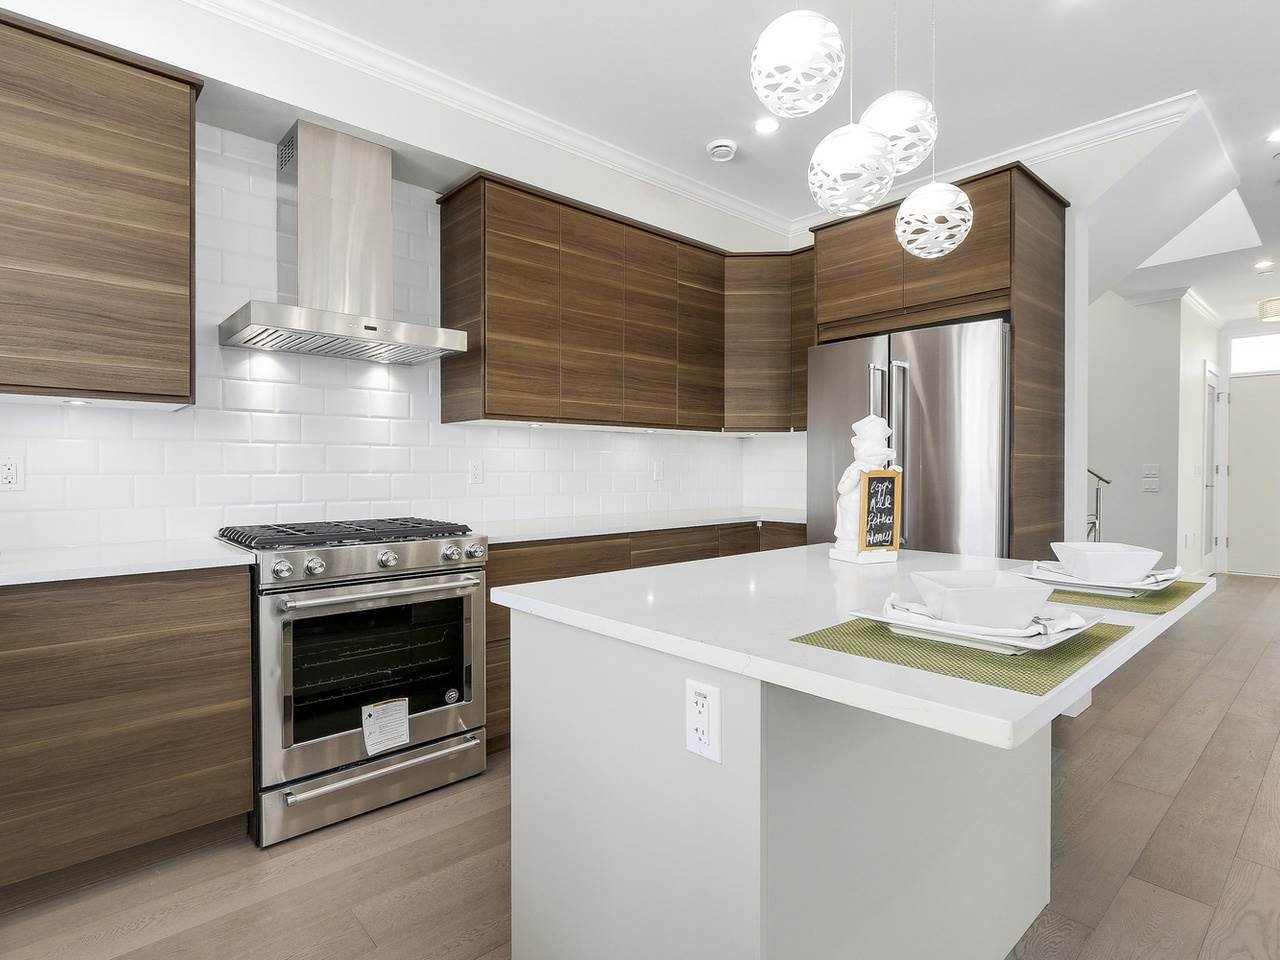 Photo 10: Photos: 3539 ETON STREET in Vancouver: Hastings East House for sale (Vancouver East)  : MLS®# R2159493